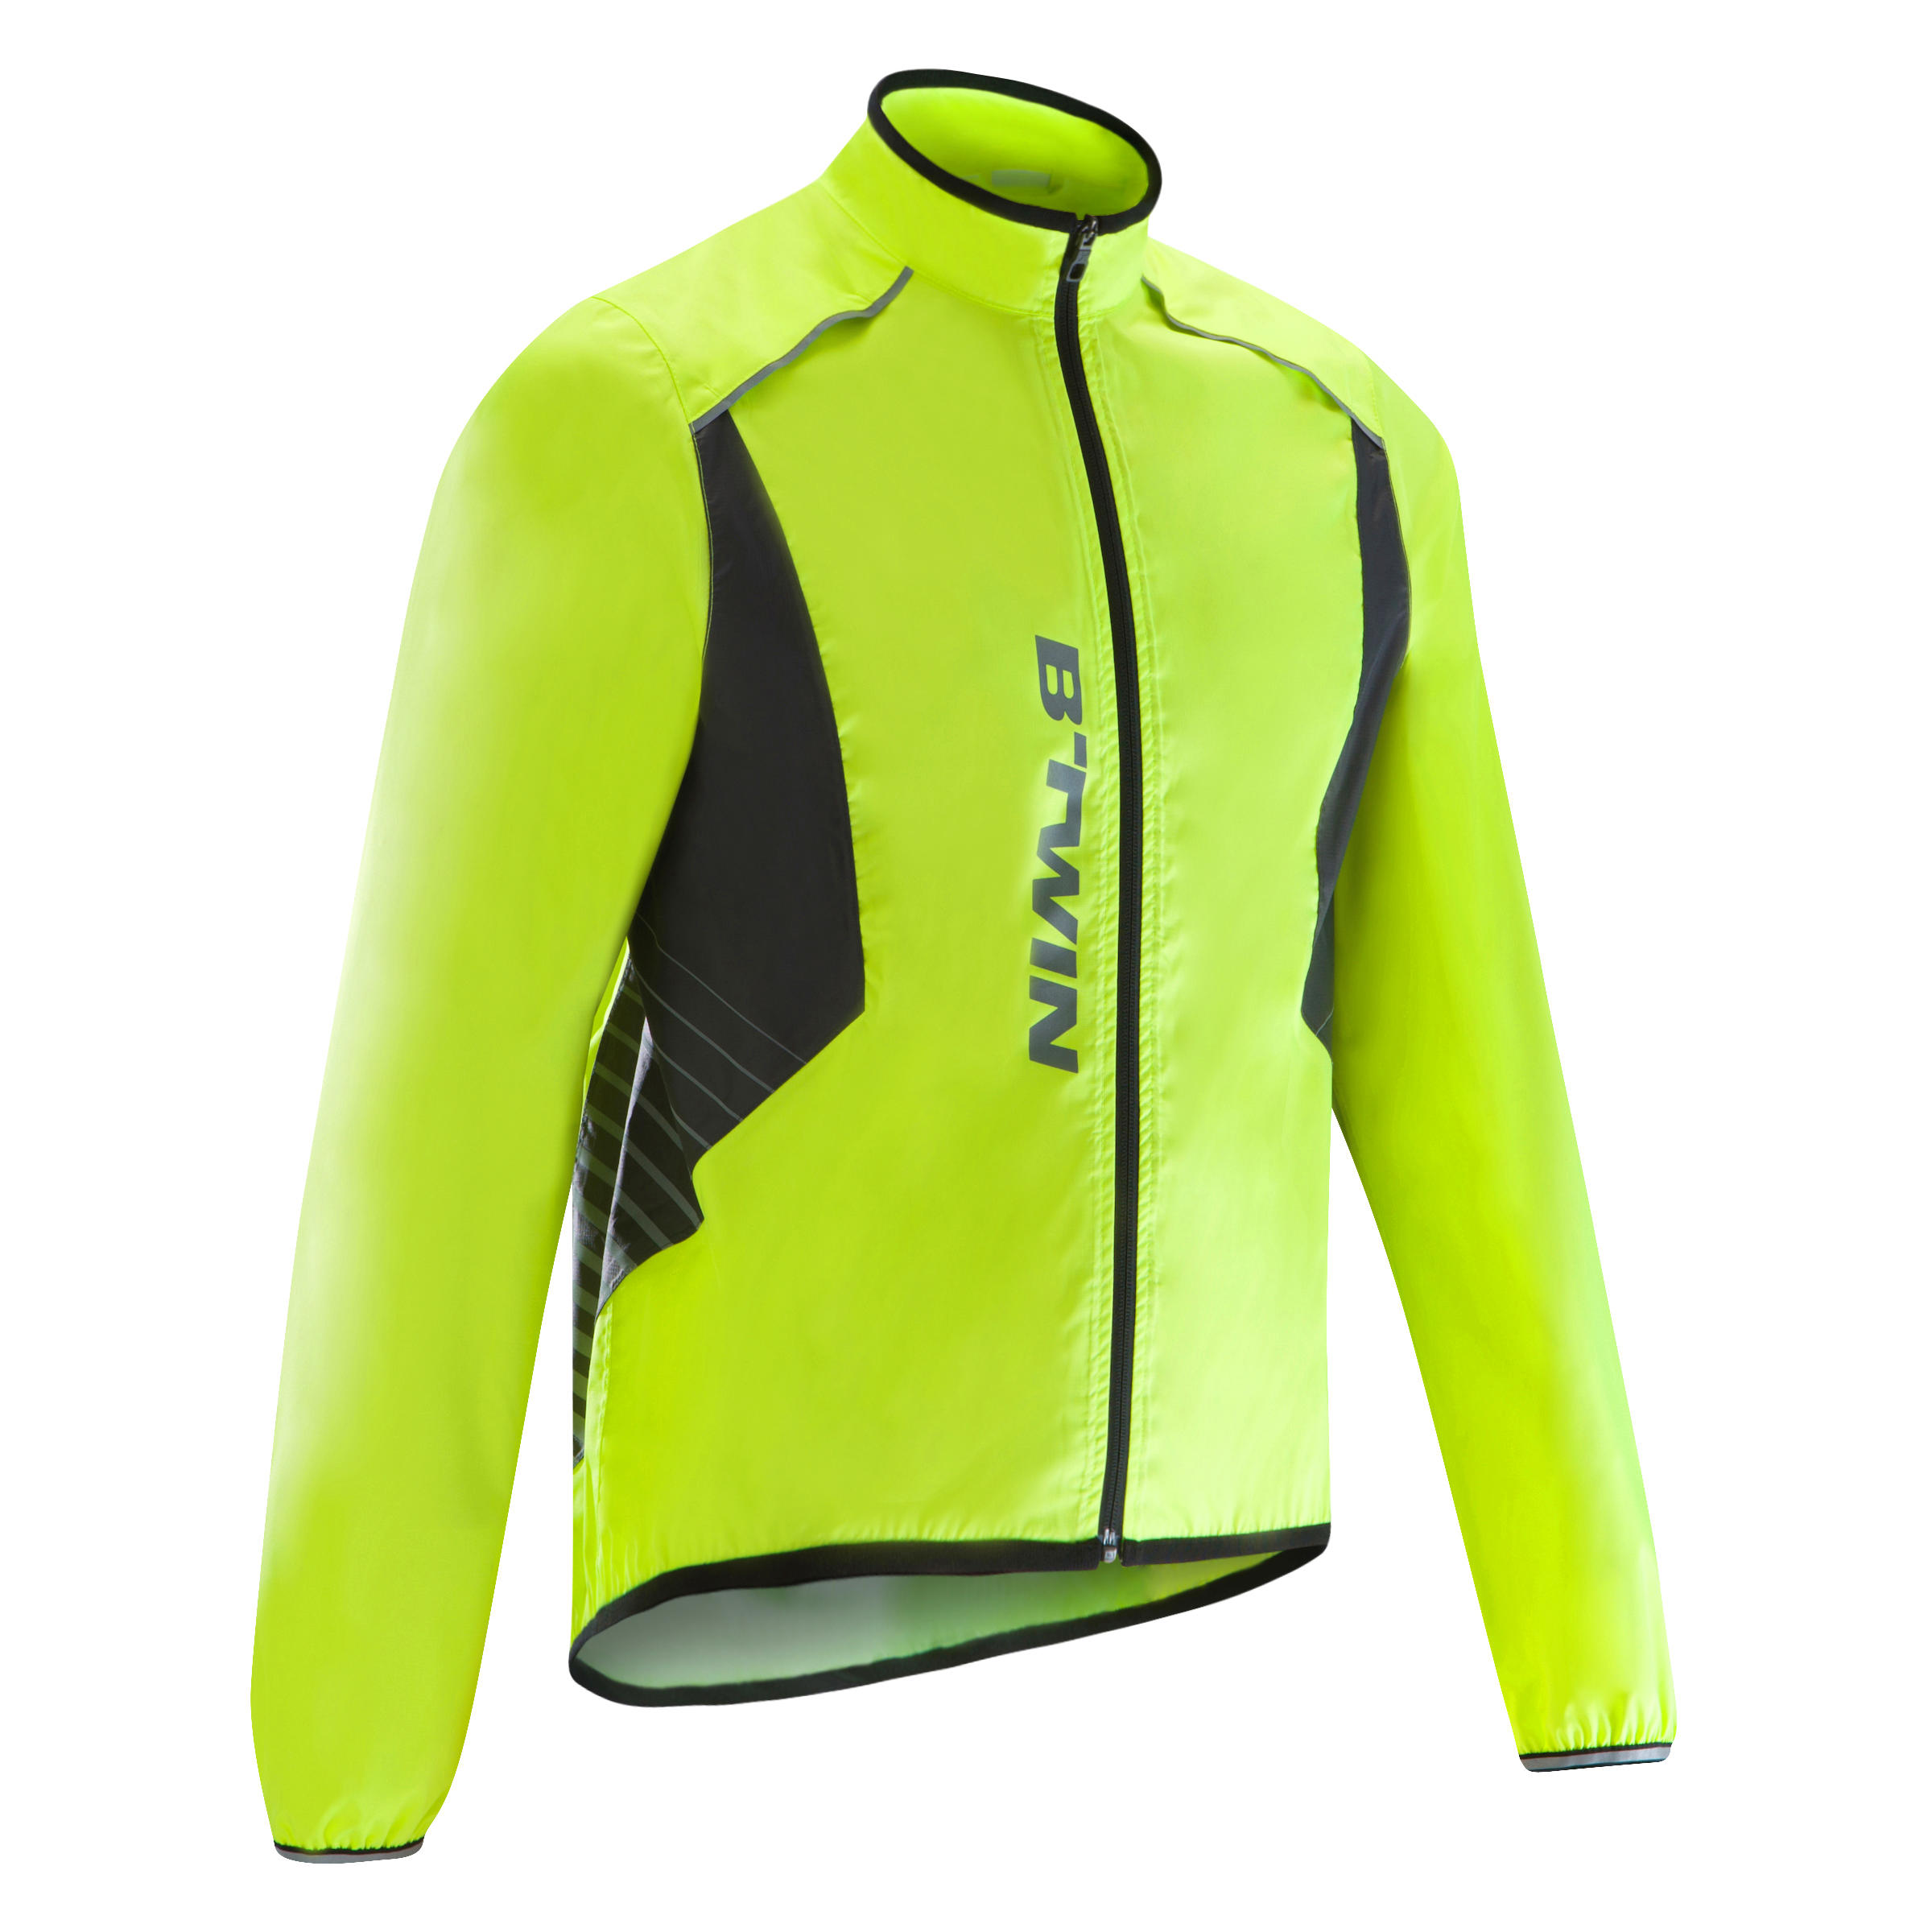 500 Cycling Rain Jacket - Fluo Softlime